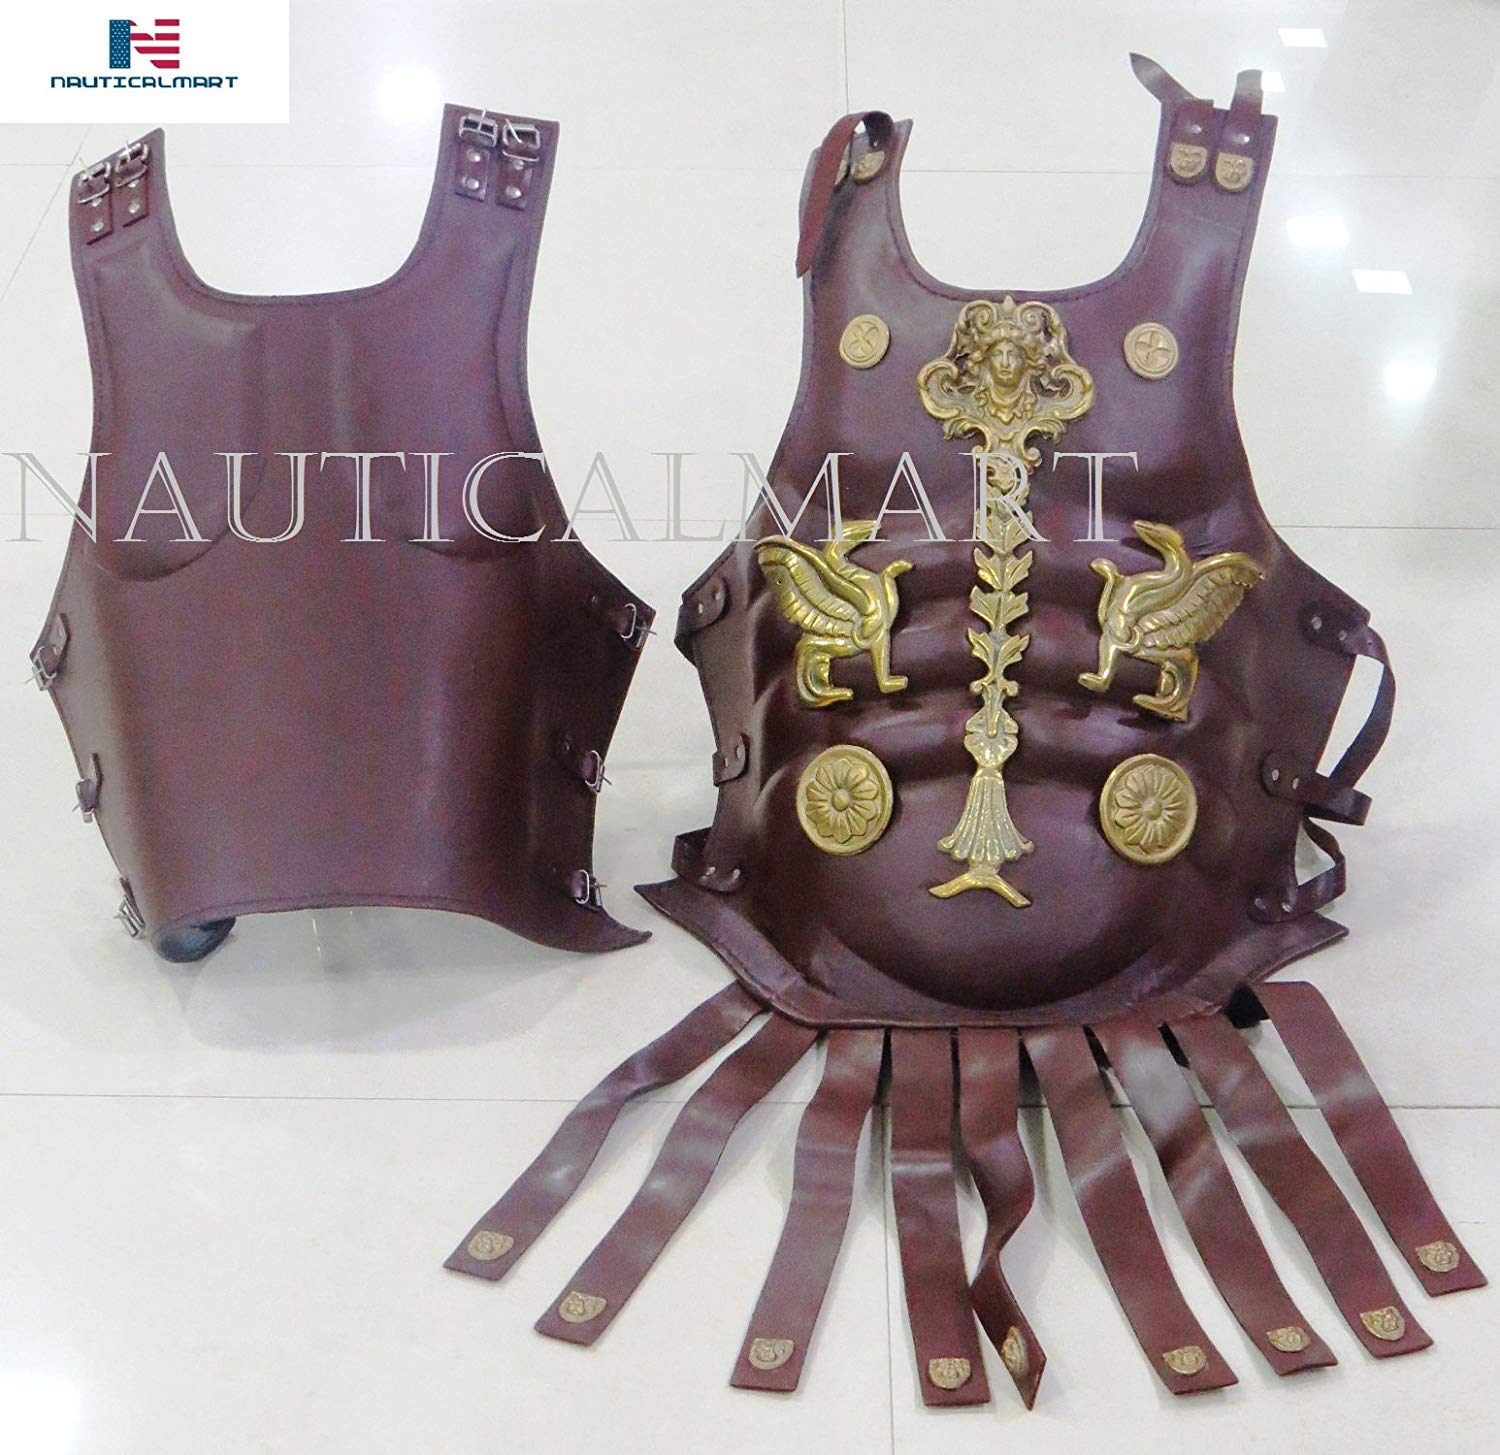 NAUTICALMART Leather Muscle Armor Medieval Roman Cuirass Heavy Chest Plate Armor